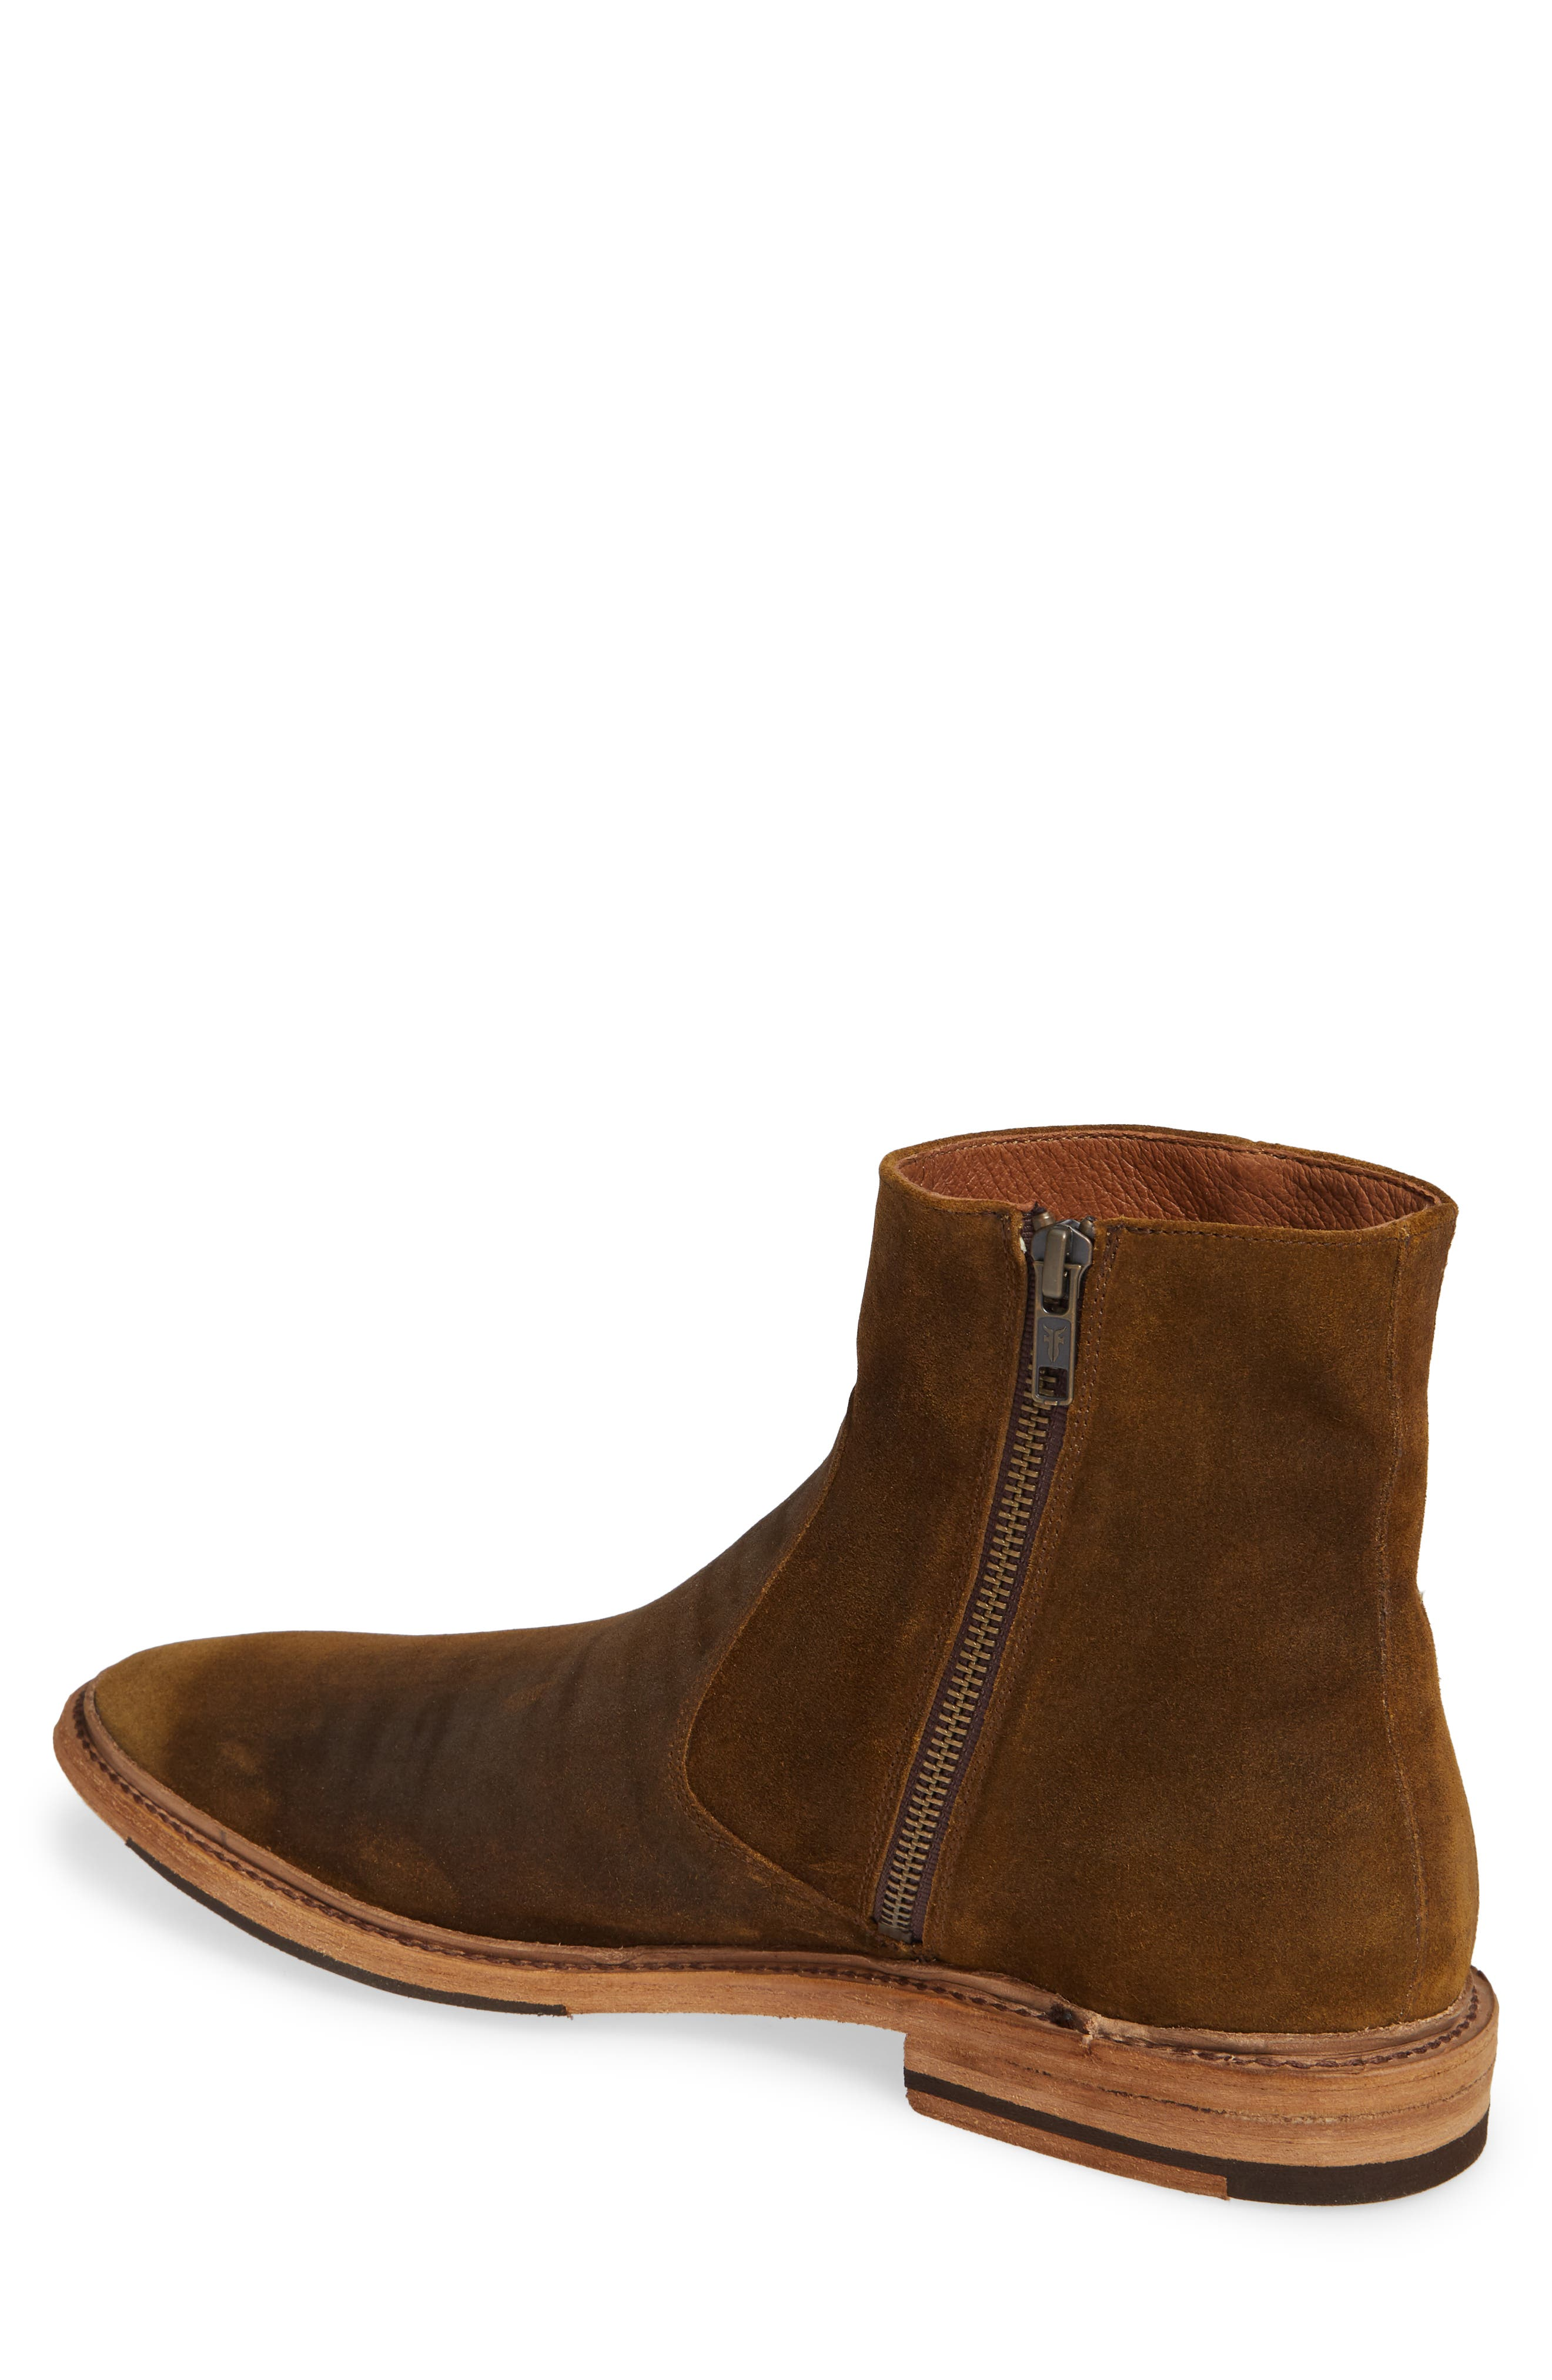 Paul Zip Boot,                             Alternate thumbnail 2, color,                             TAN SUEDE